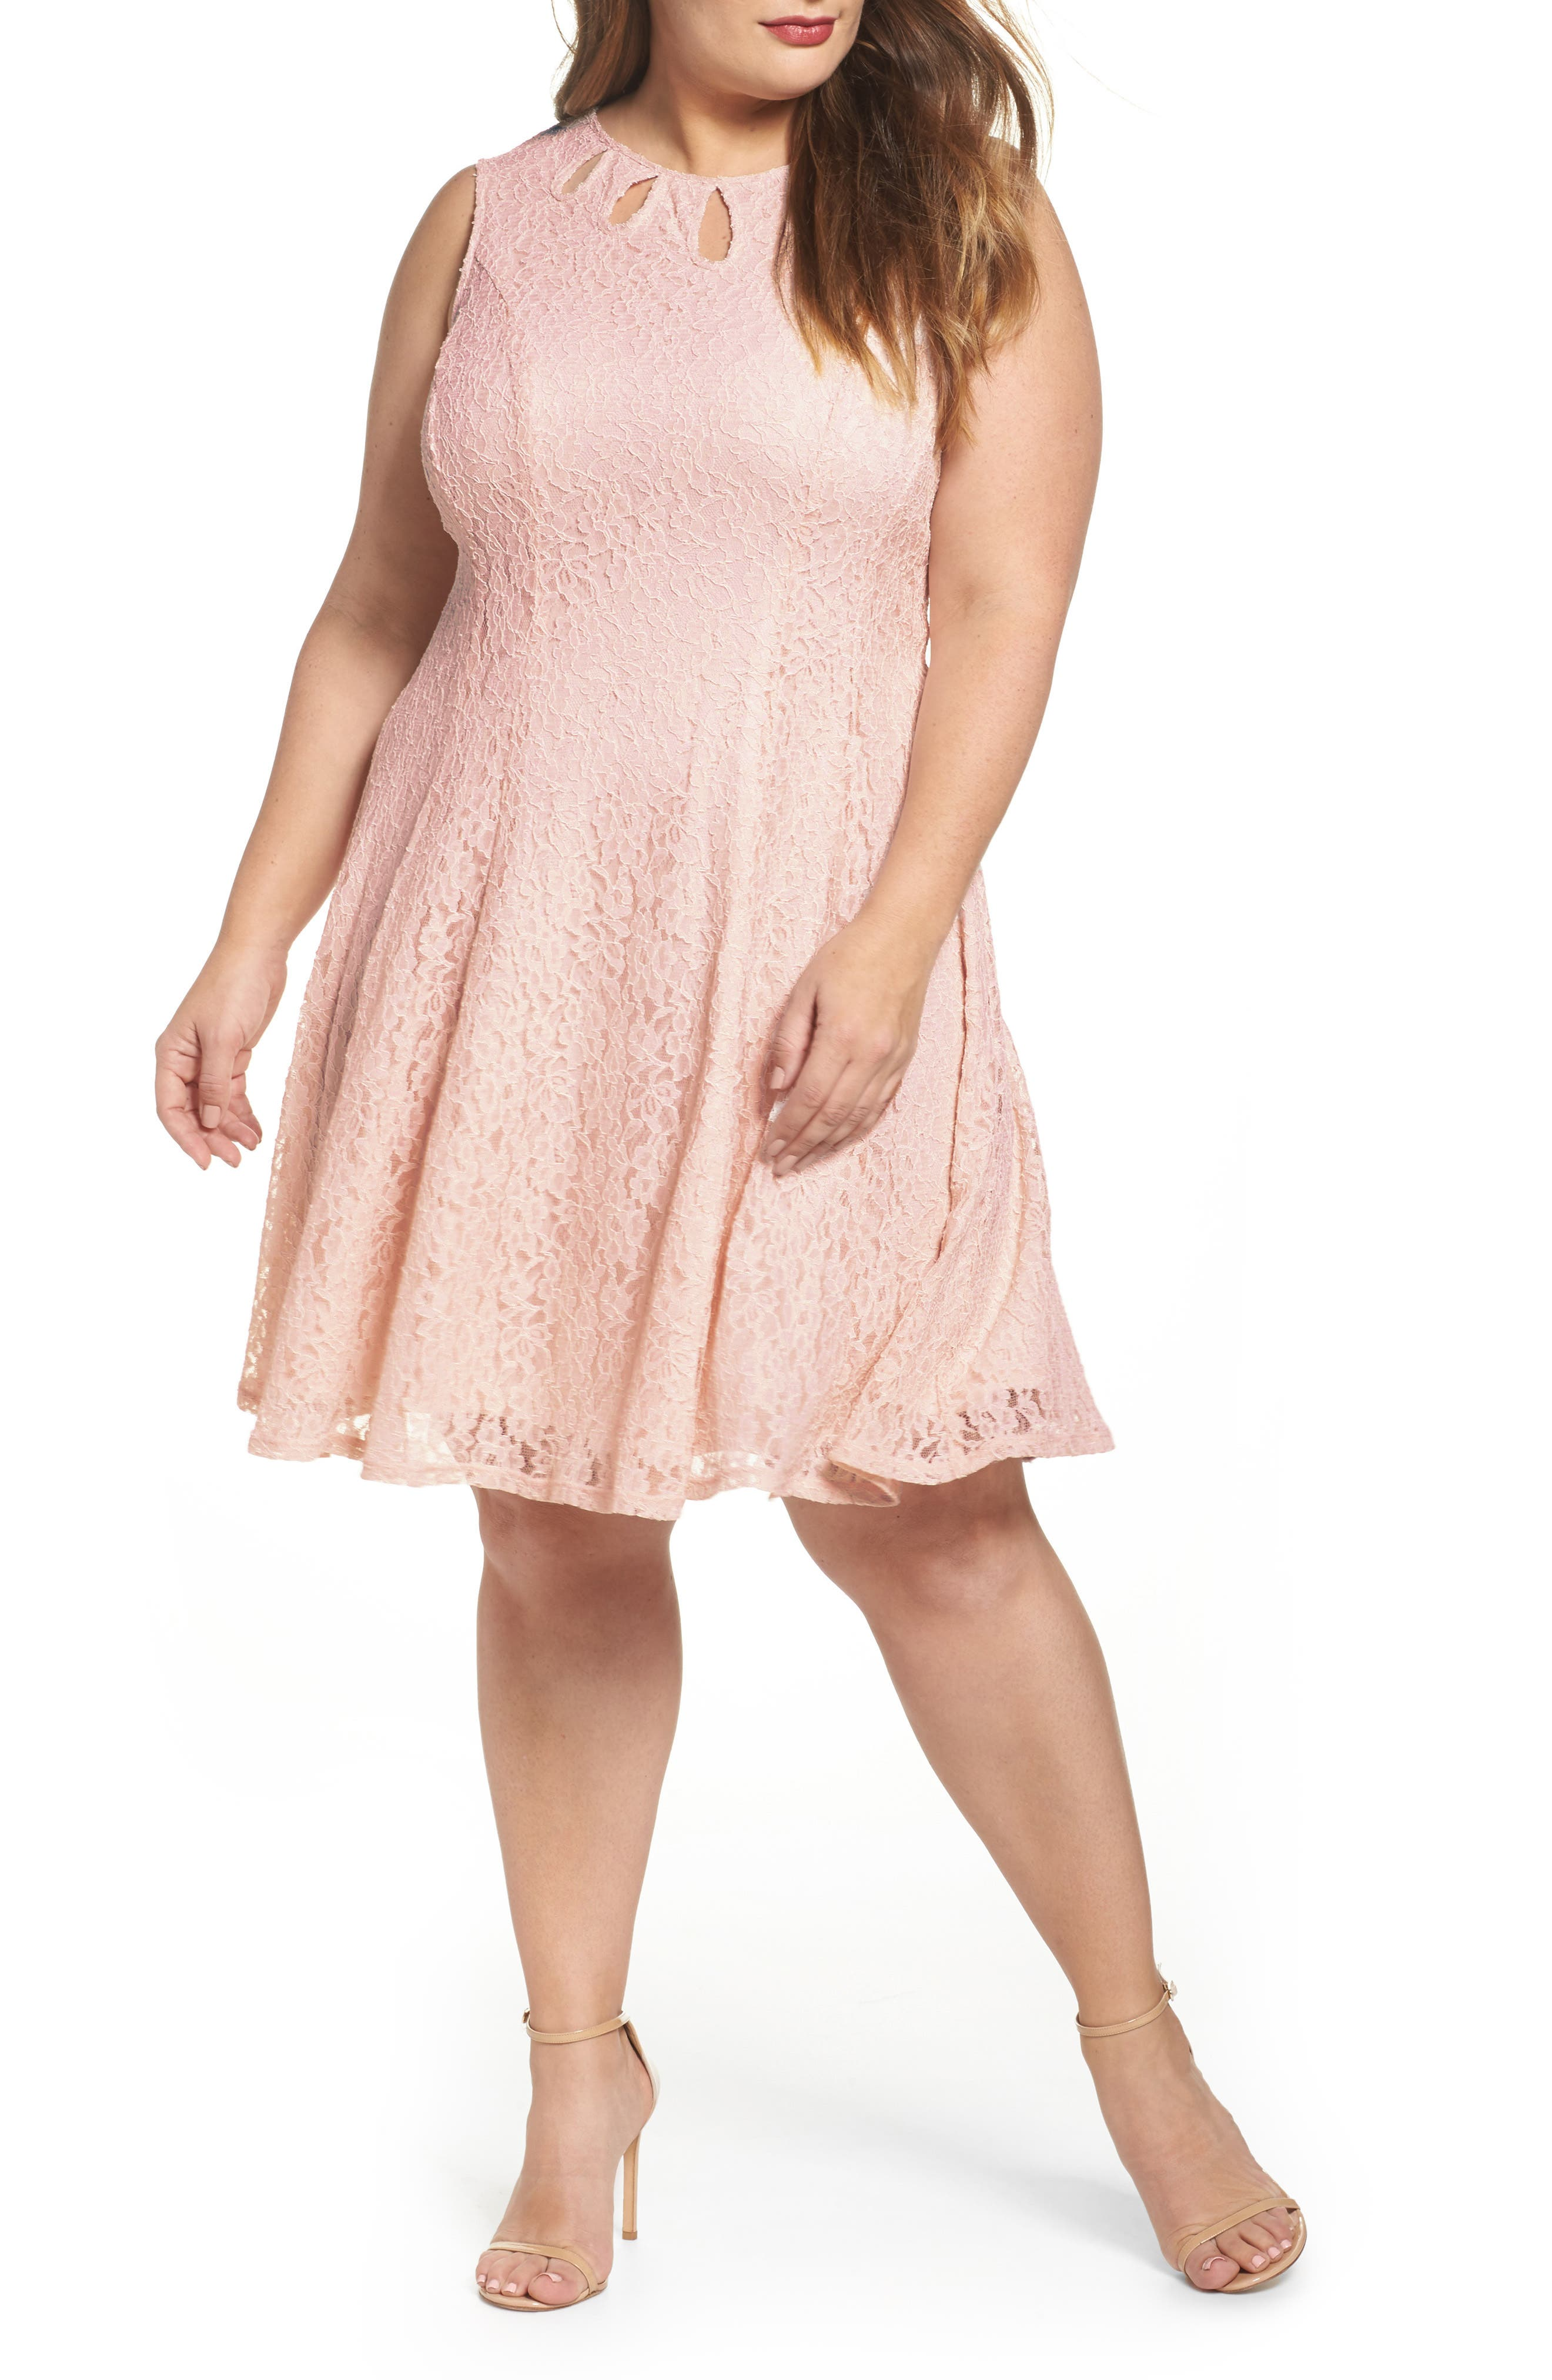 Lace Teardrop Cutout Fit and Flare Dress,                             Main thumbnail 1, color,                             Pink/ Pink